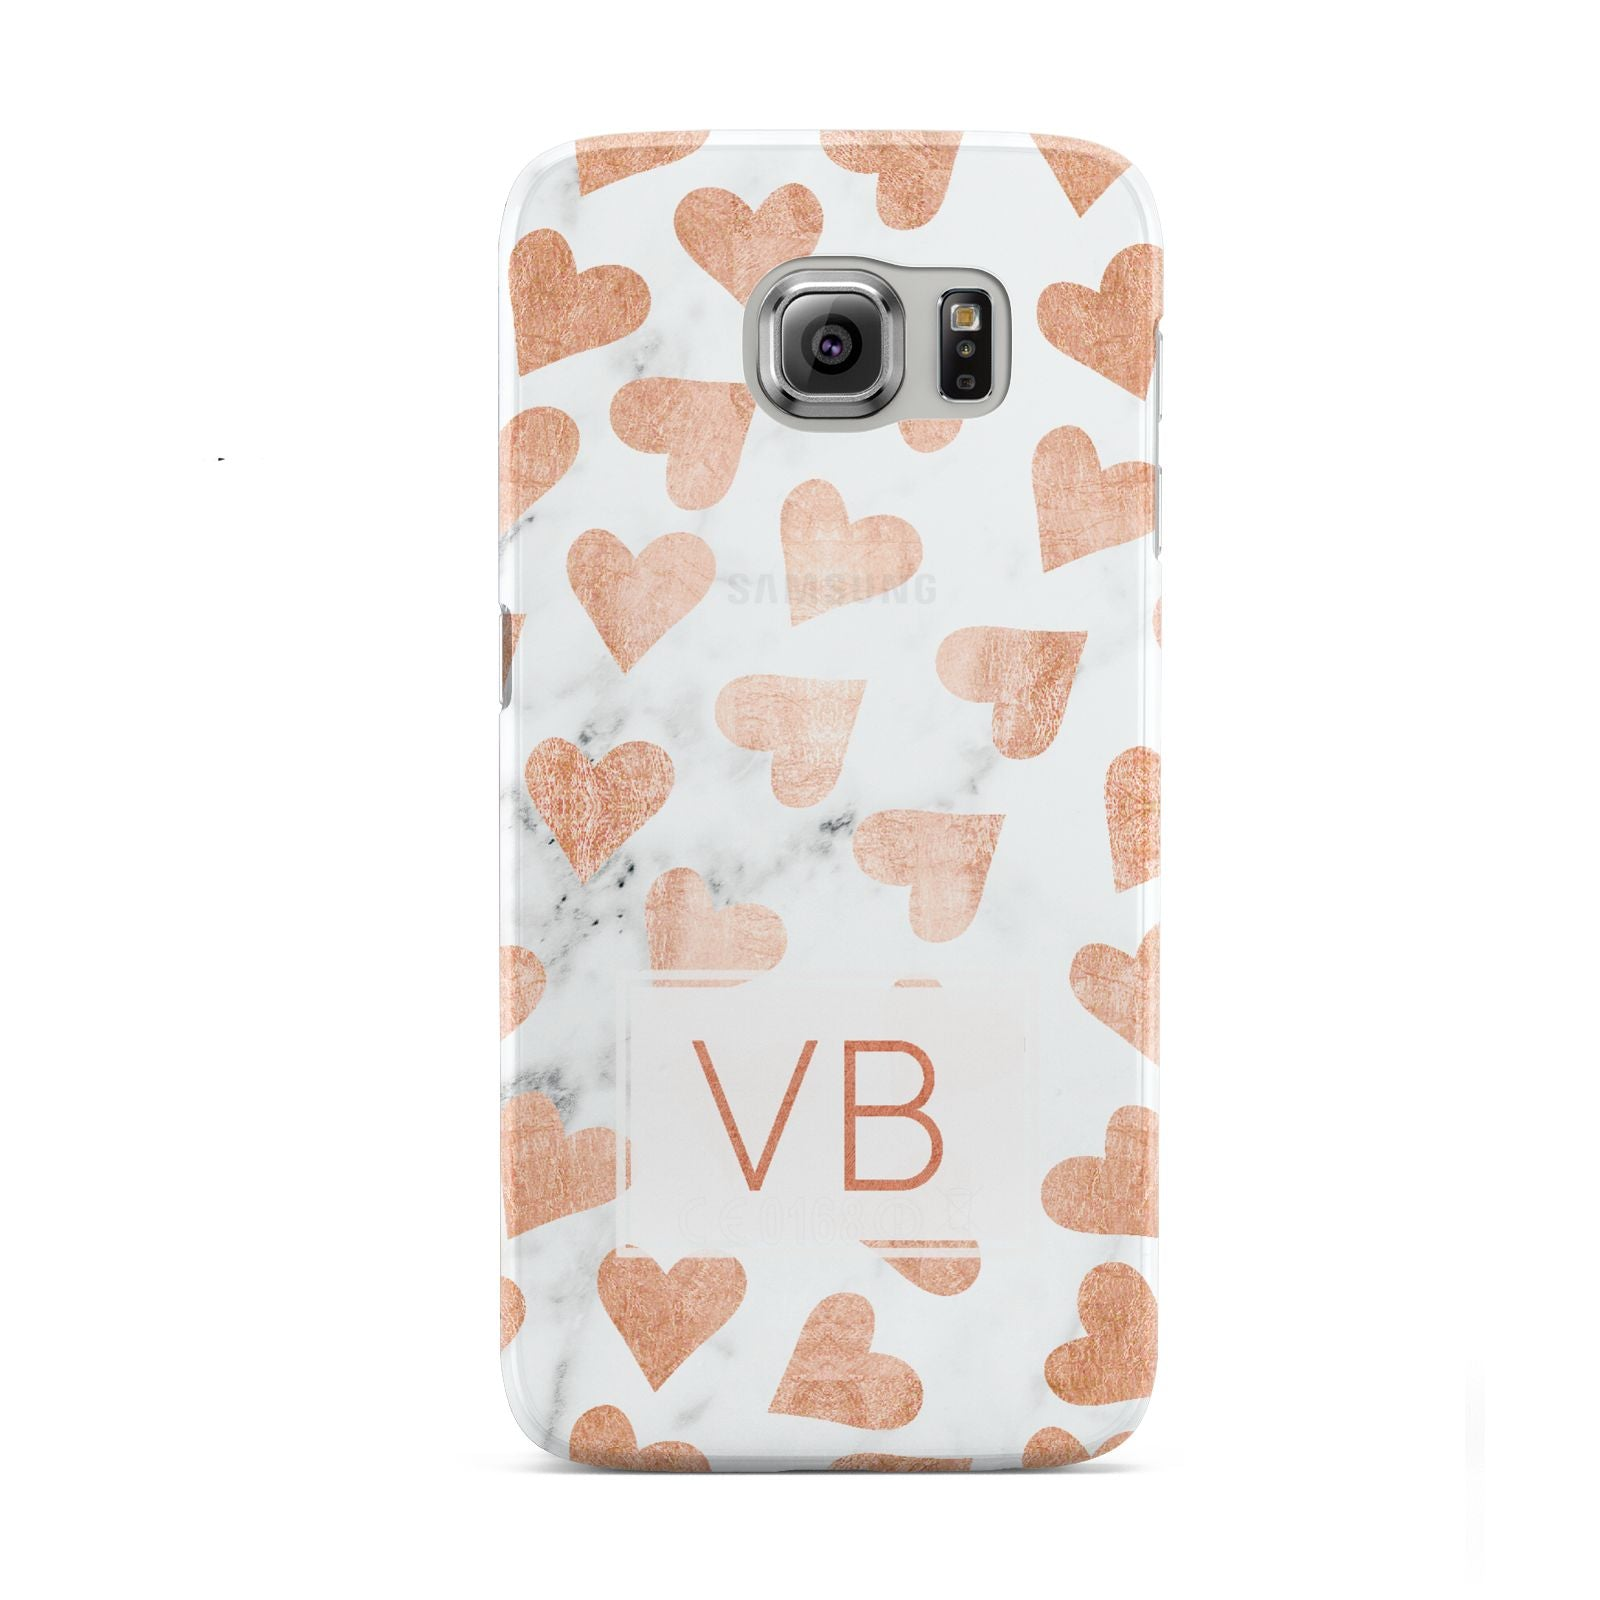 Personalised Heart Initialled Marble Samsung Galaxy S6 Case